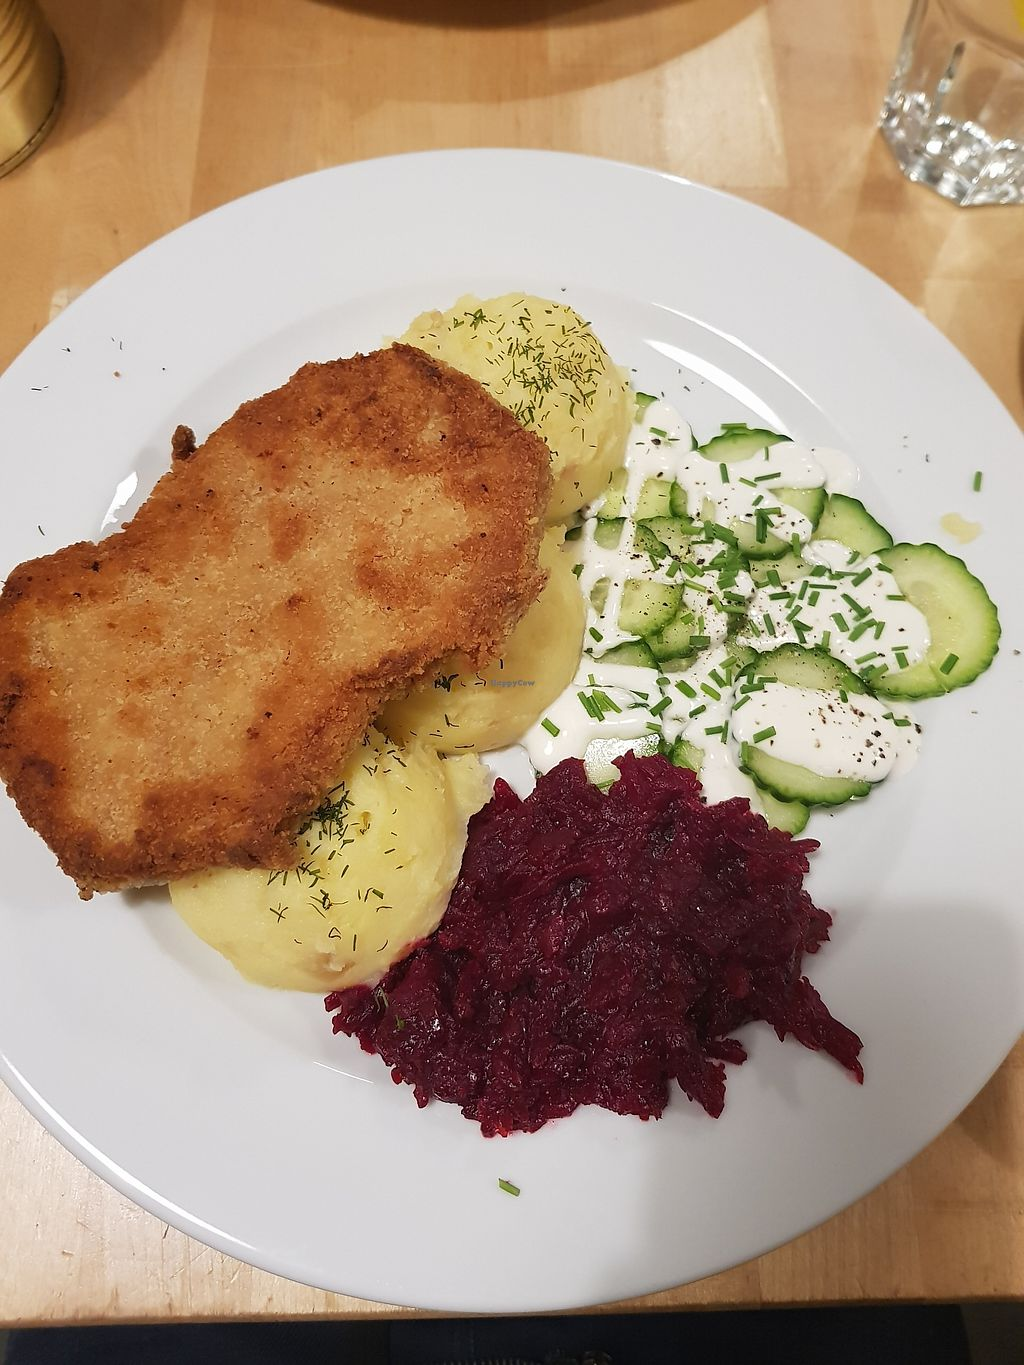 """Photo of Lokal Vegan Bistro  by <a href=""""/members/profile/Mirage"""">Mirage</a> <br/>Schabowy <br/> February 9, 2018  - <a href='/contact/abuse/image/55545/356702'>Report</a>"""